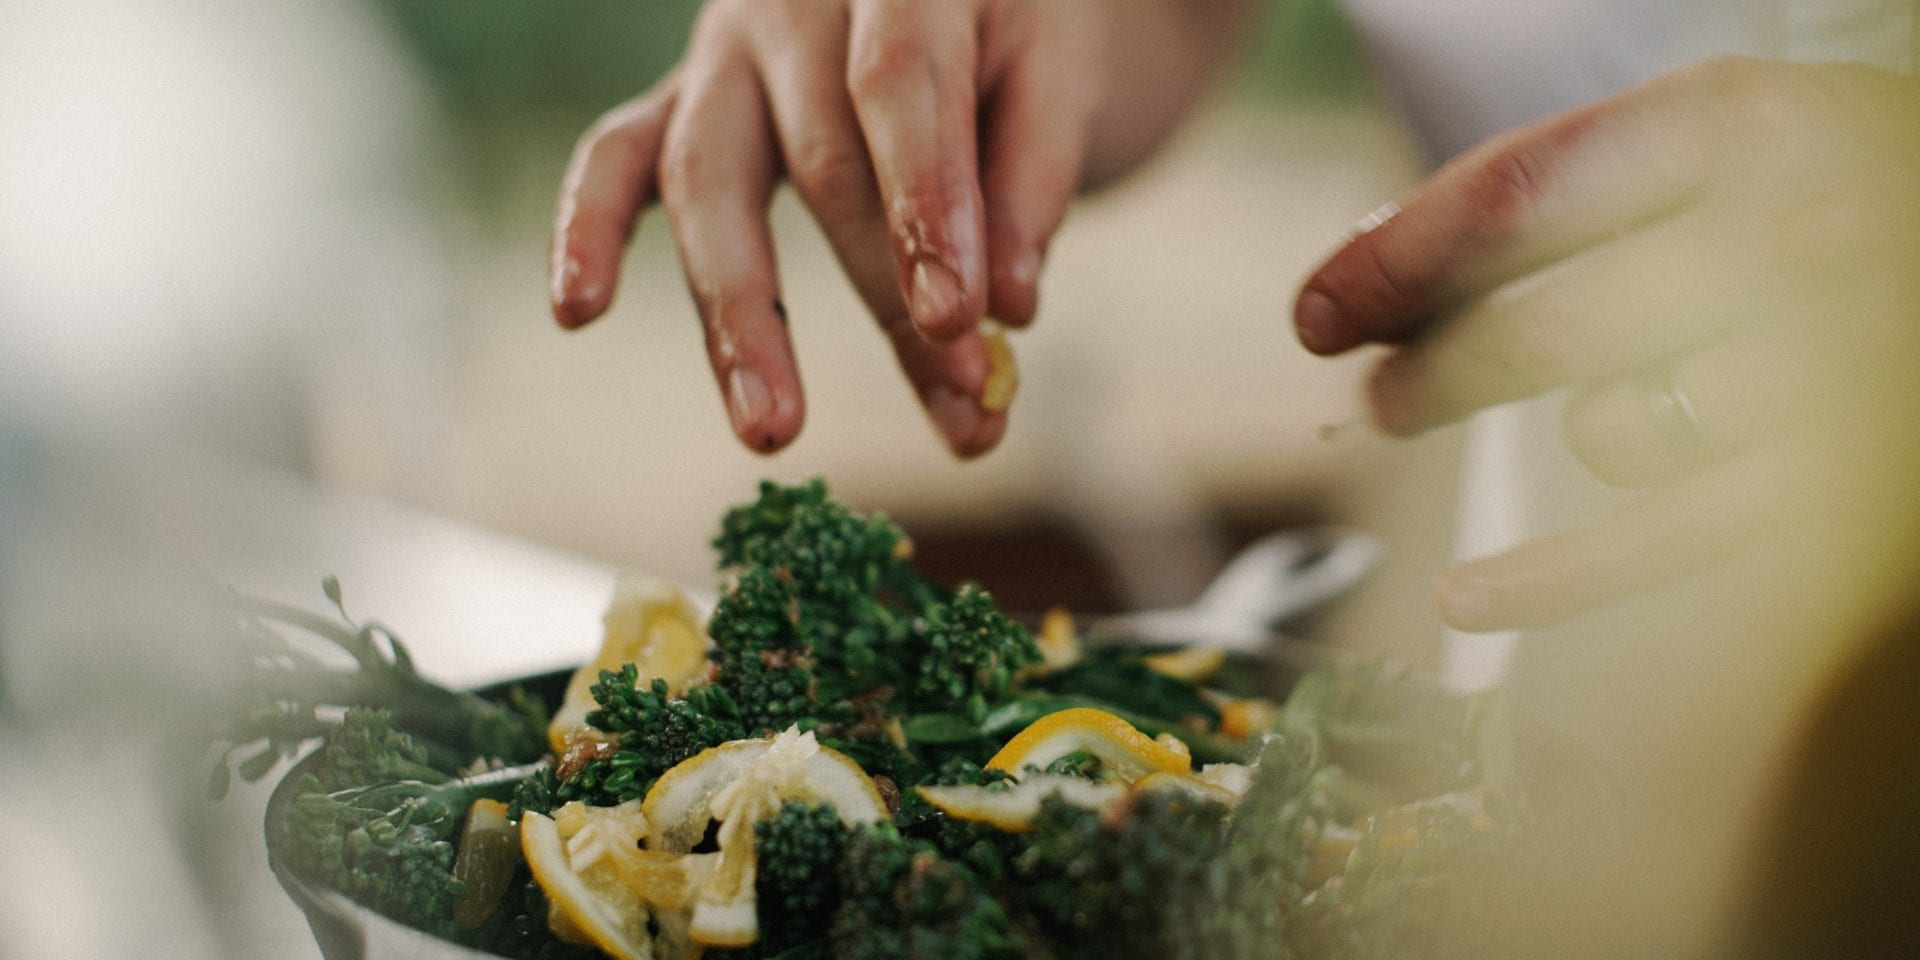 A chef preparing salad with kale and lemon – Compass Group jobs